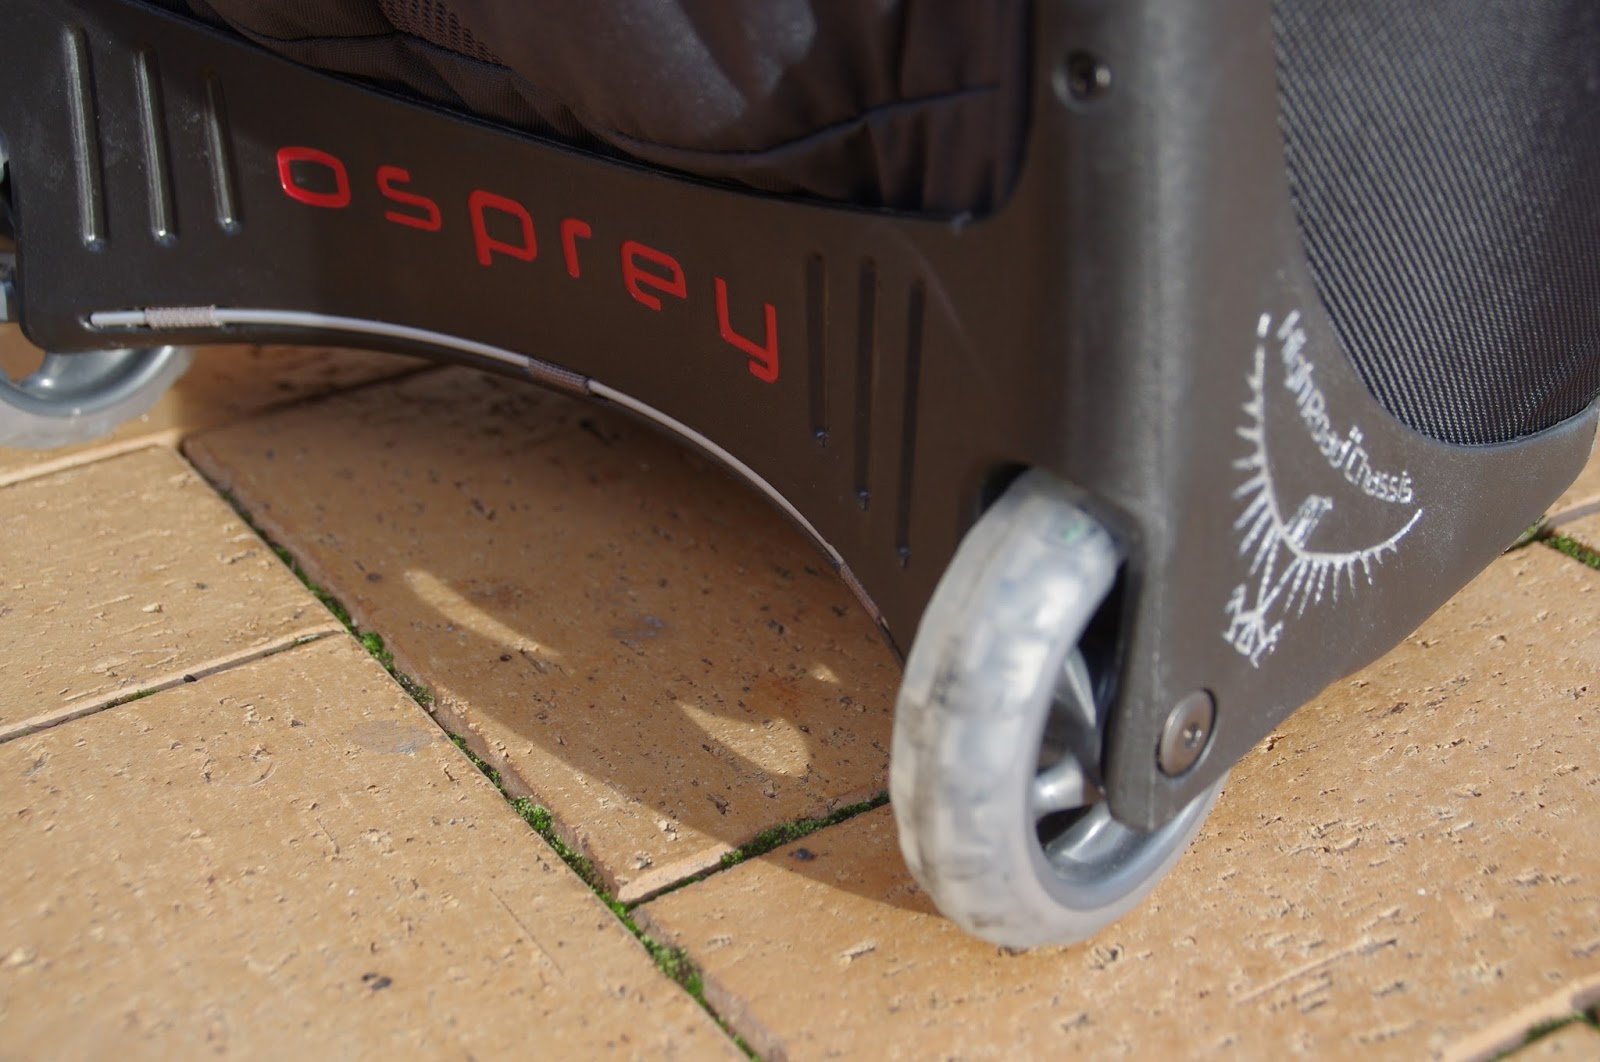 Osprey Meridian 75 Luggage wheels